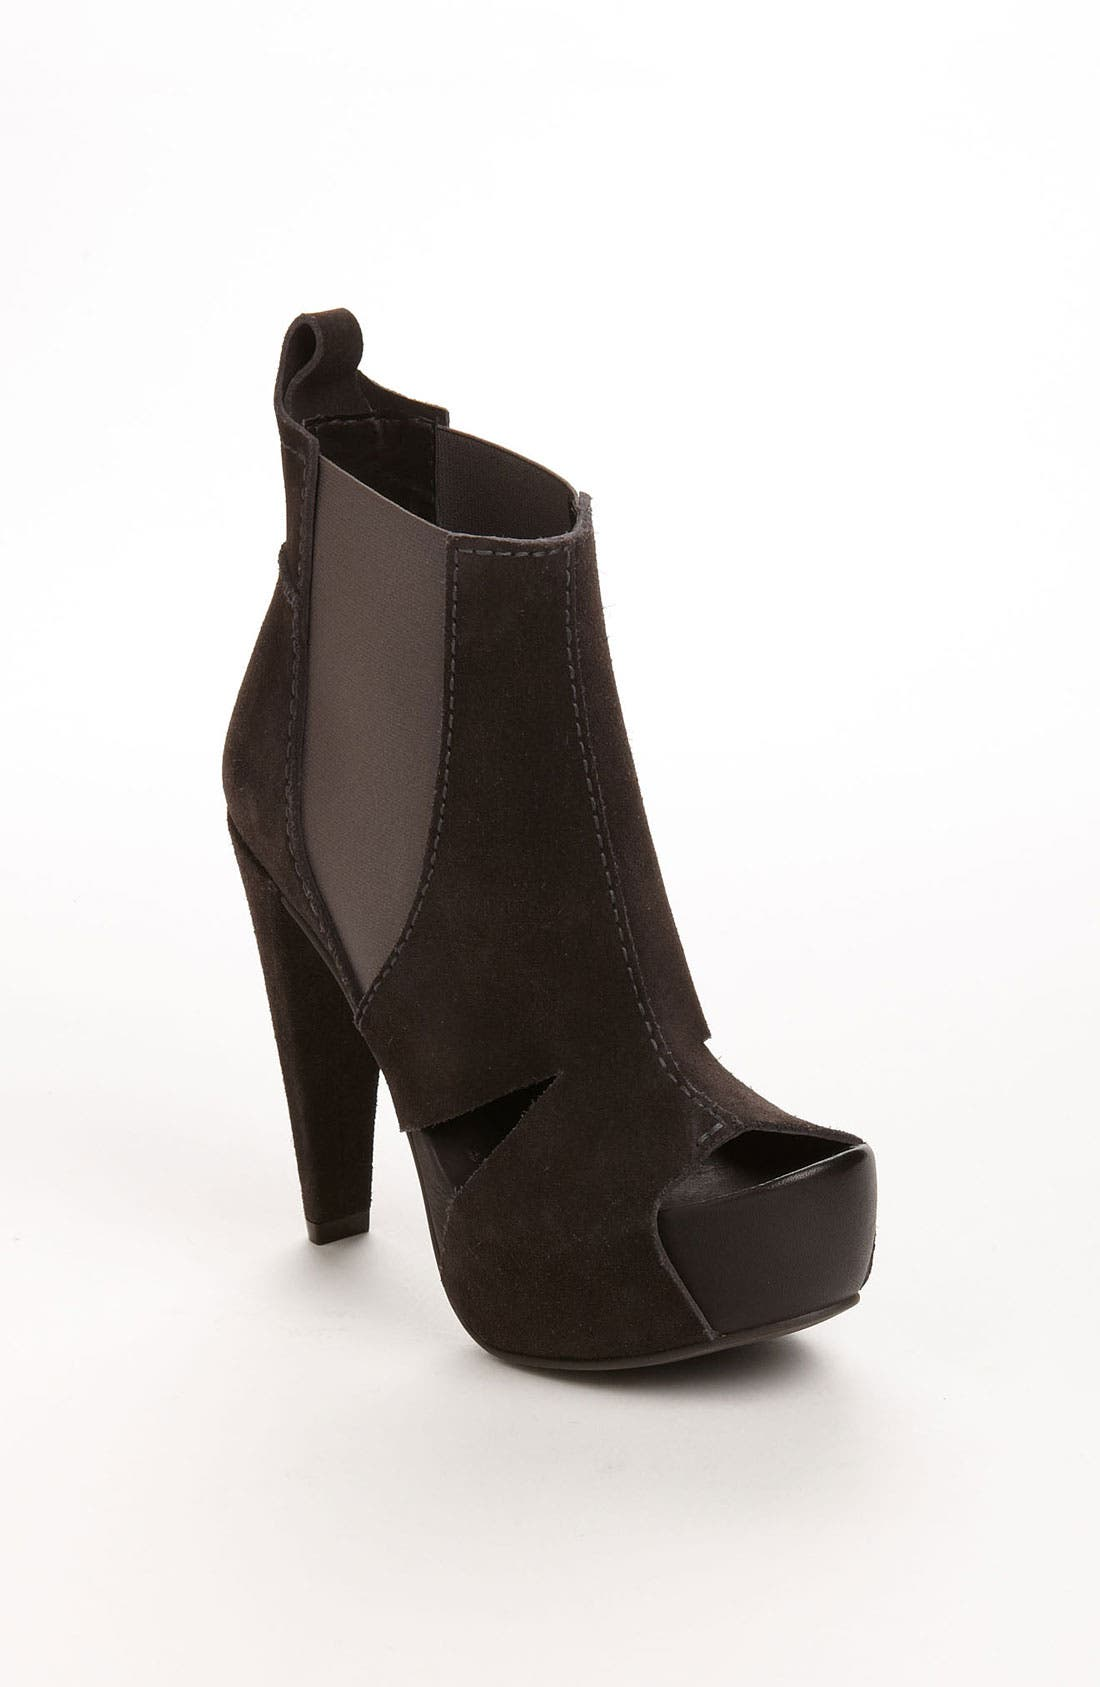 Alternate Image 1 Selected - Pedro Garcia 'Abbie' Peep Toe Bootie